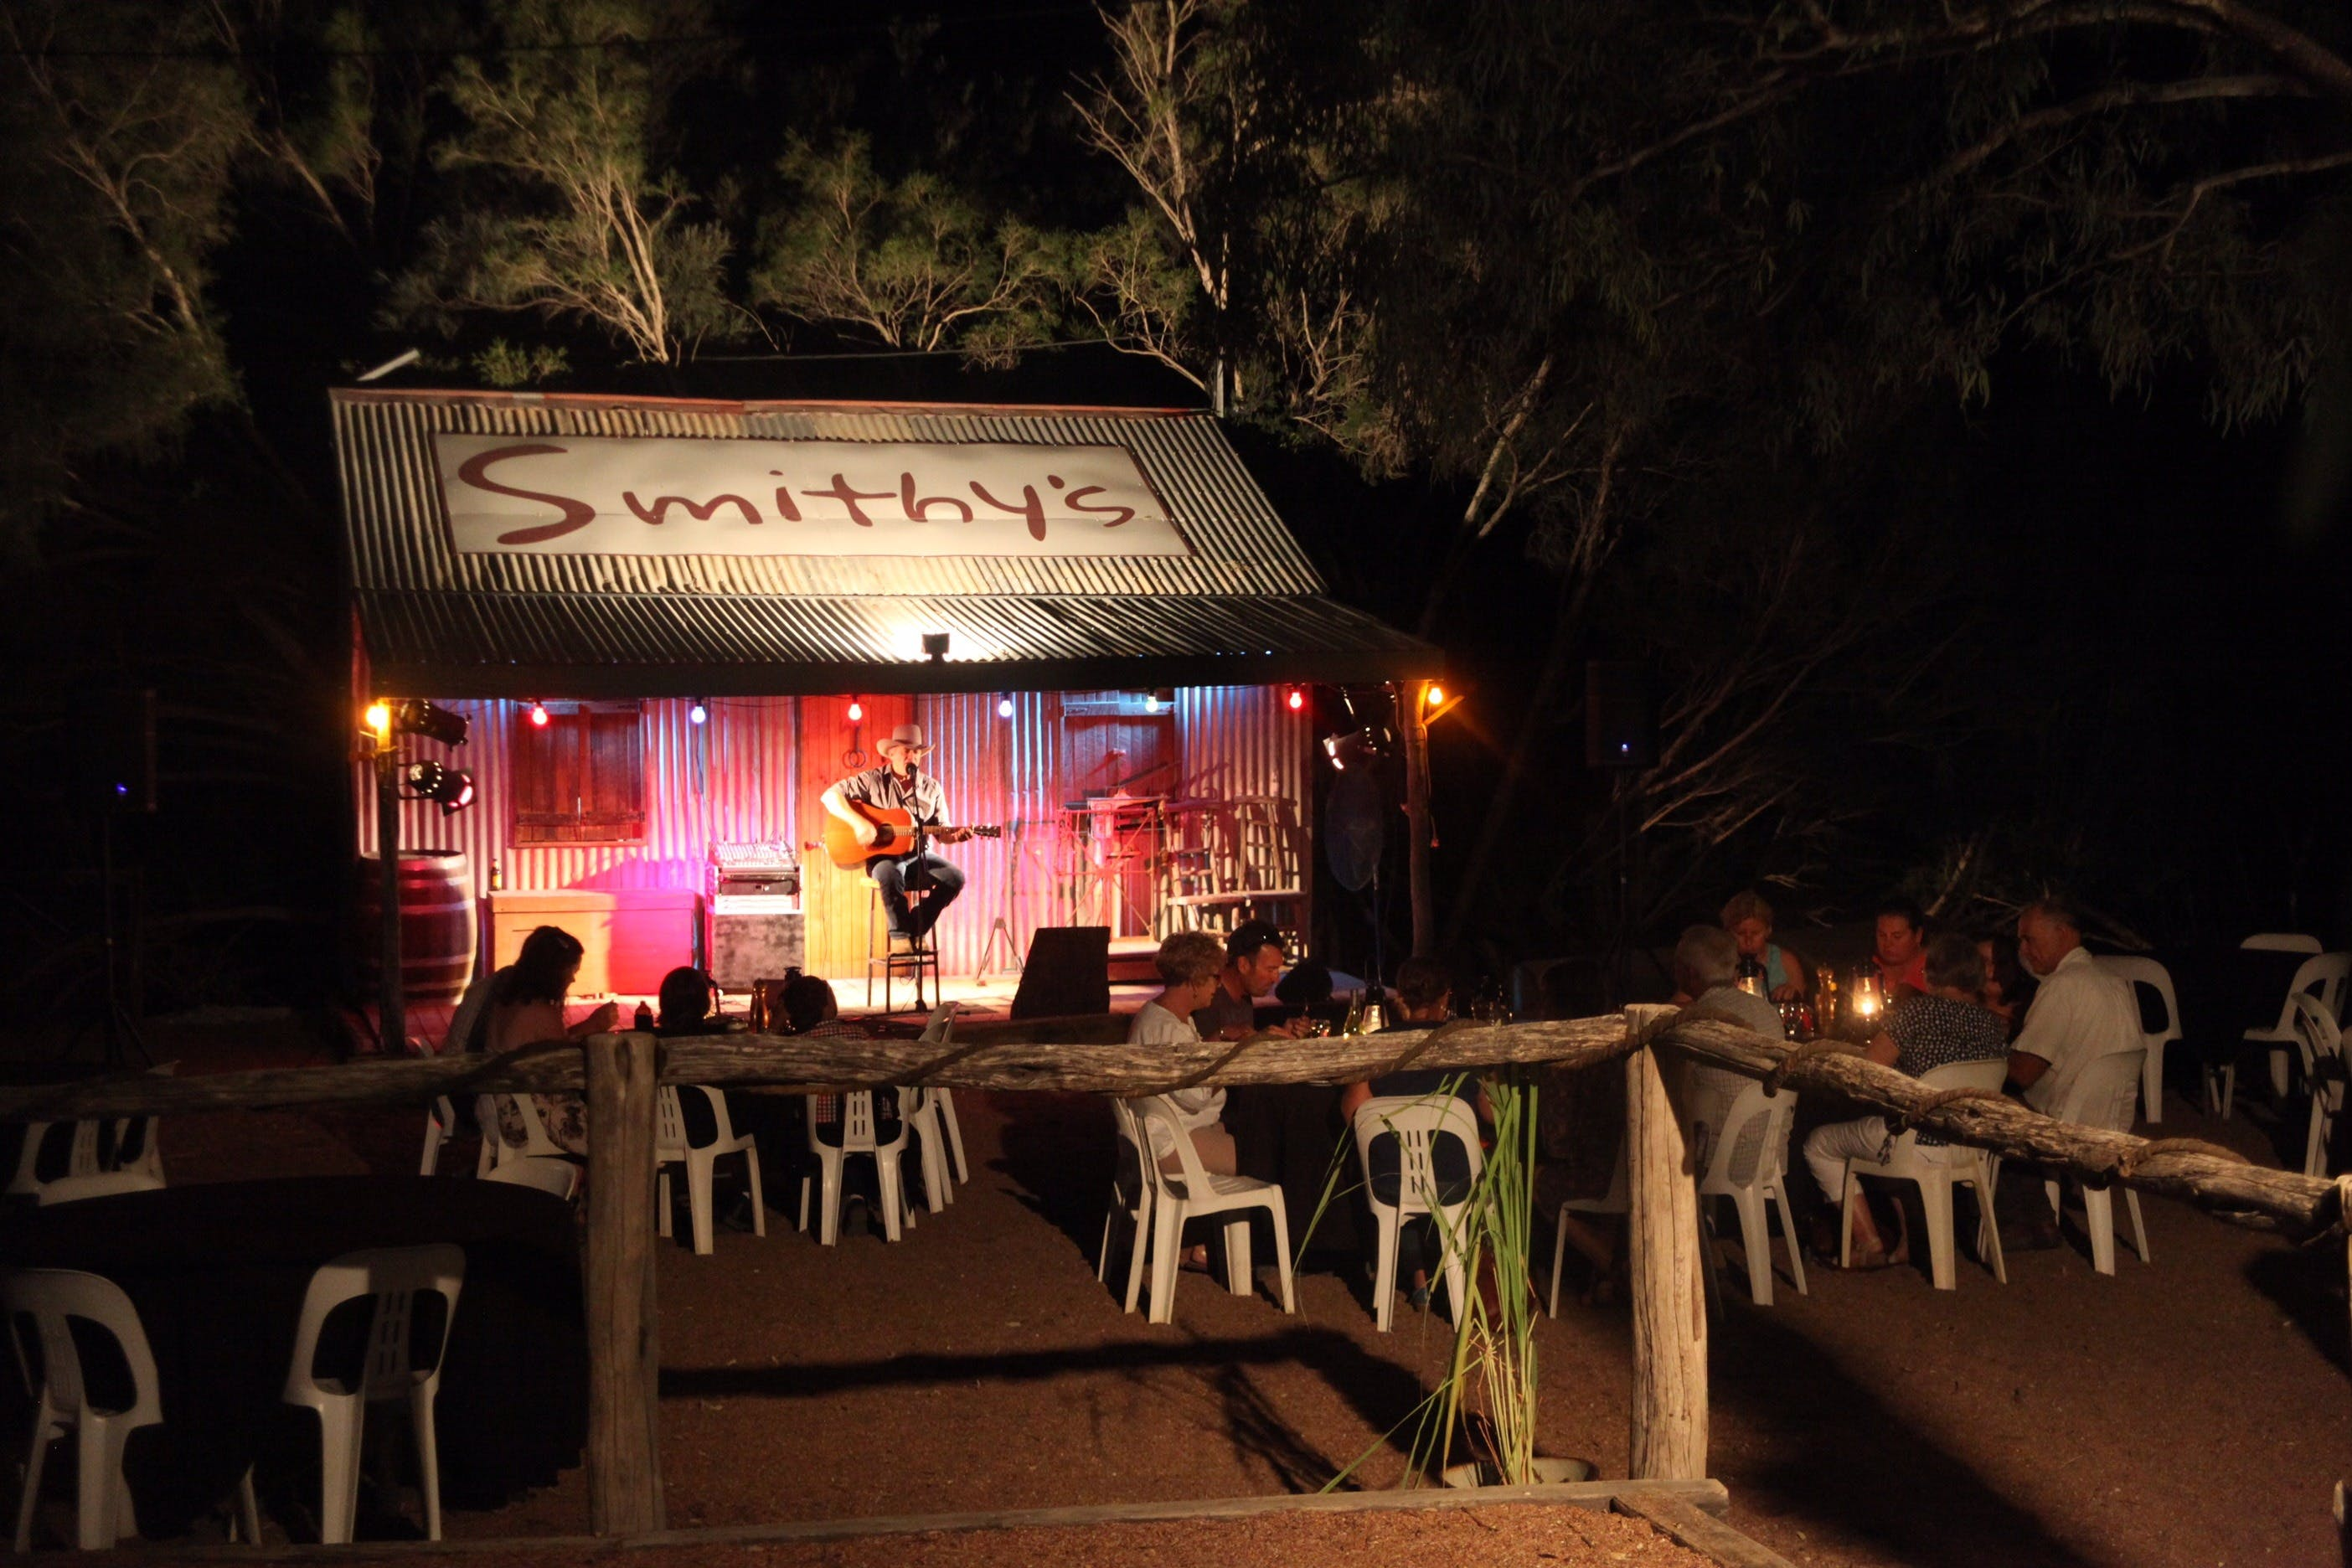 Smithy's Outback Dinner and Show - Accommodation Batemans Bay